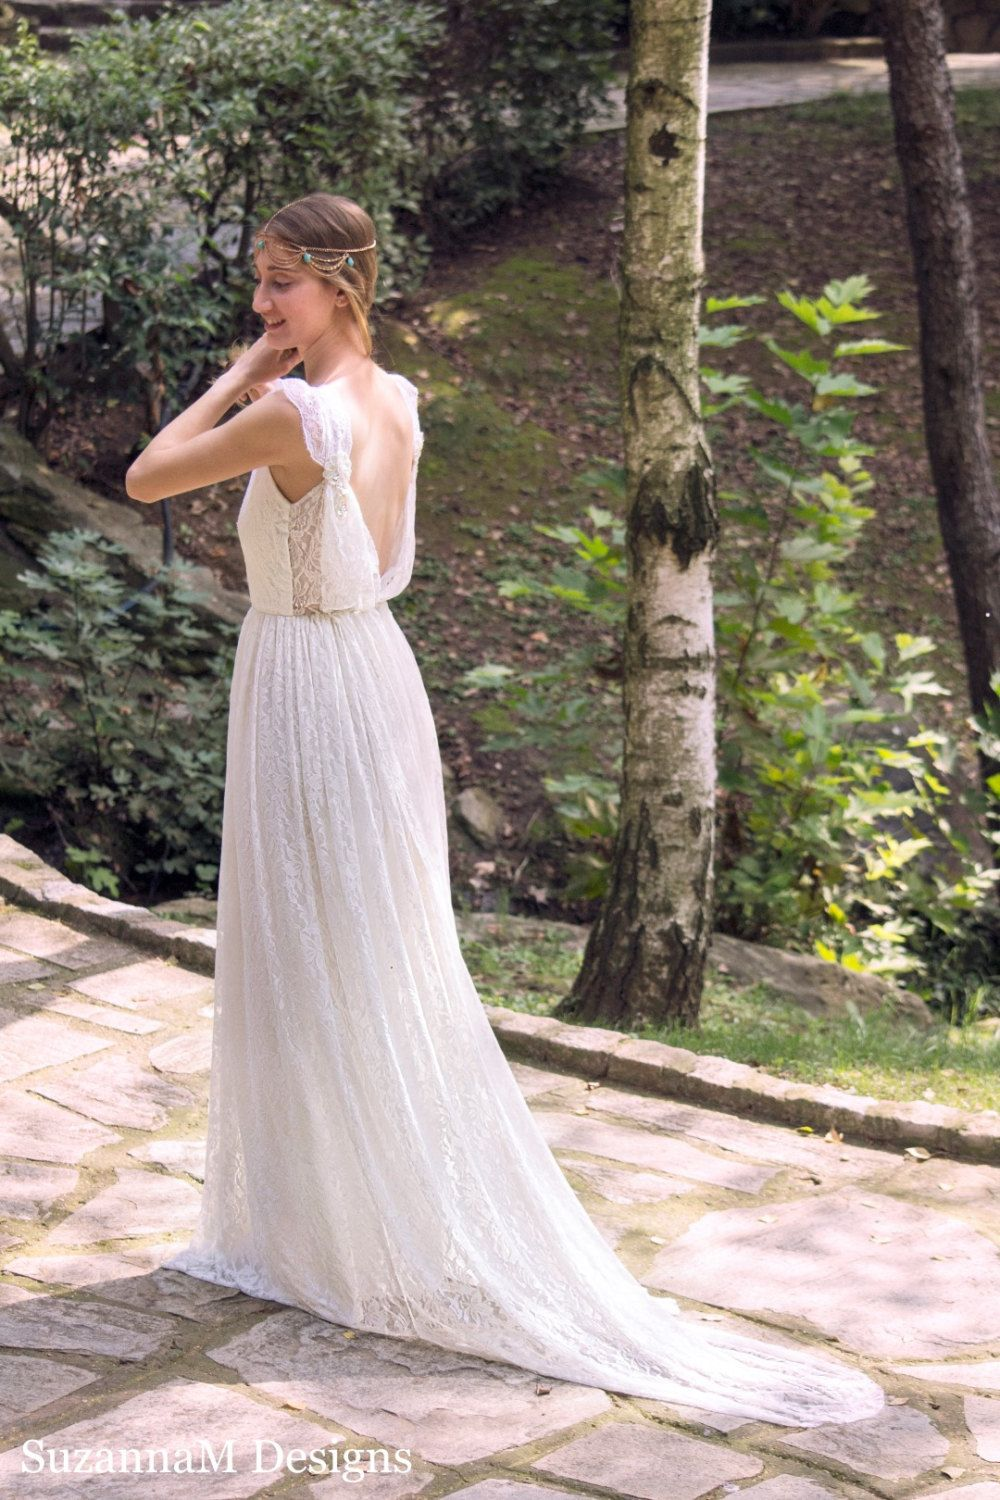 Ivory bohemian wedding dress beautiful lace wedding long gown boho ivory bohemian wedding dress beautiful lace wedding long gown boho gown bridal gypsy wedding dress ombrellifo Images